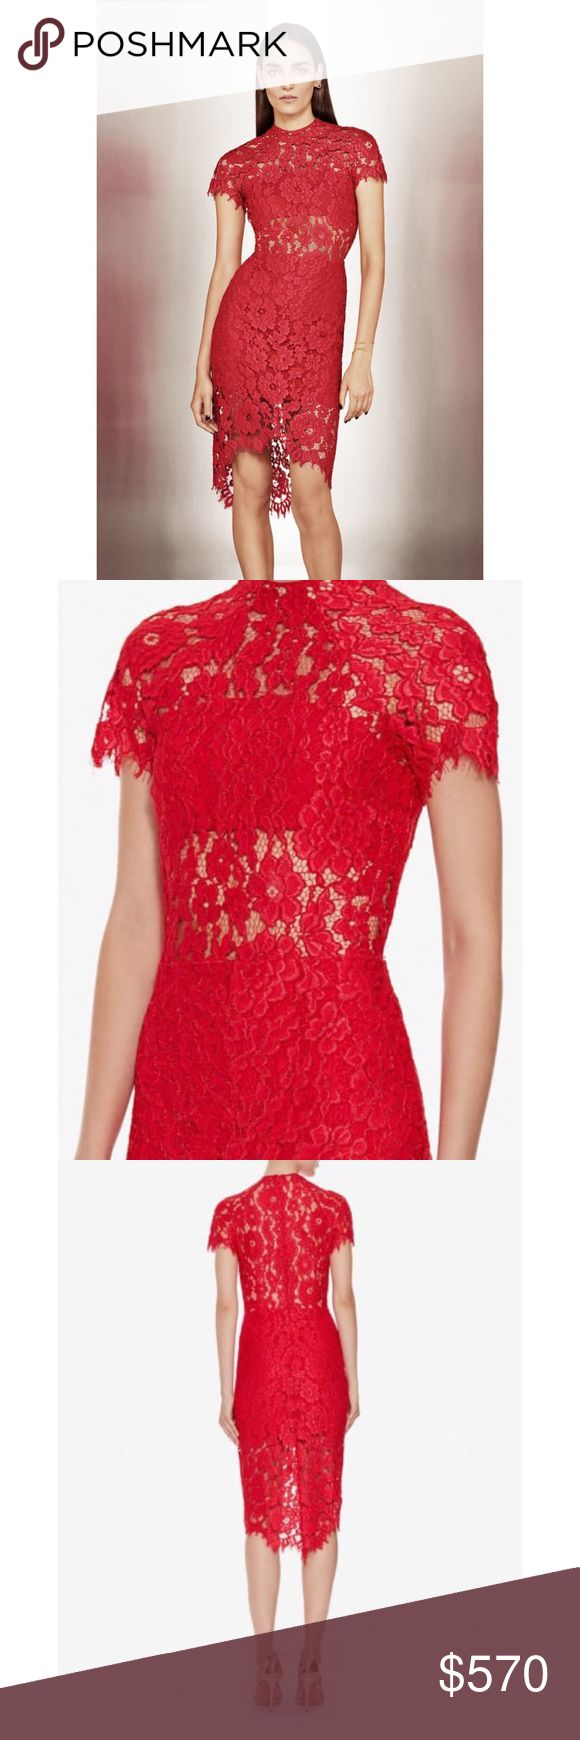 ALEXIS ELSEN RED LACE DRESS INTERMIX only SOLD OUT ALEXIS ELSEN RED LACE DRESS * INTERMIX EXCLUSIVE * SOLD OUT * SZ SMALL... New without tags Alexis Dresses